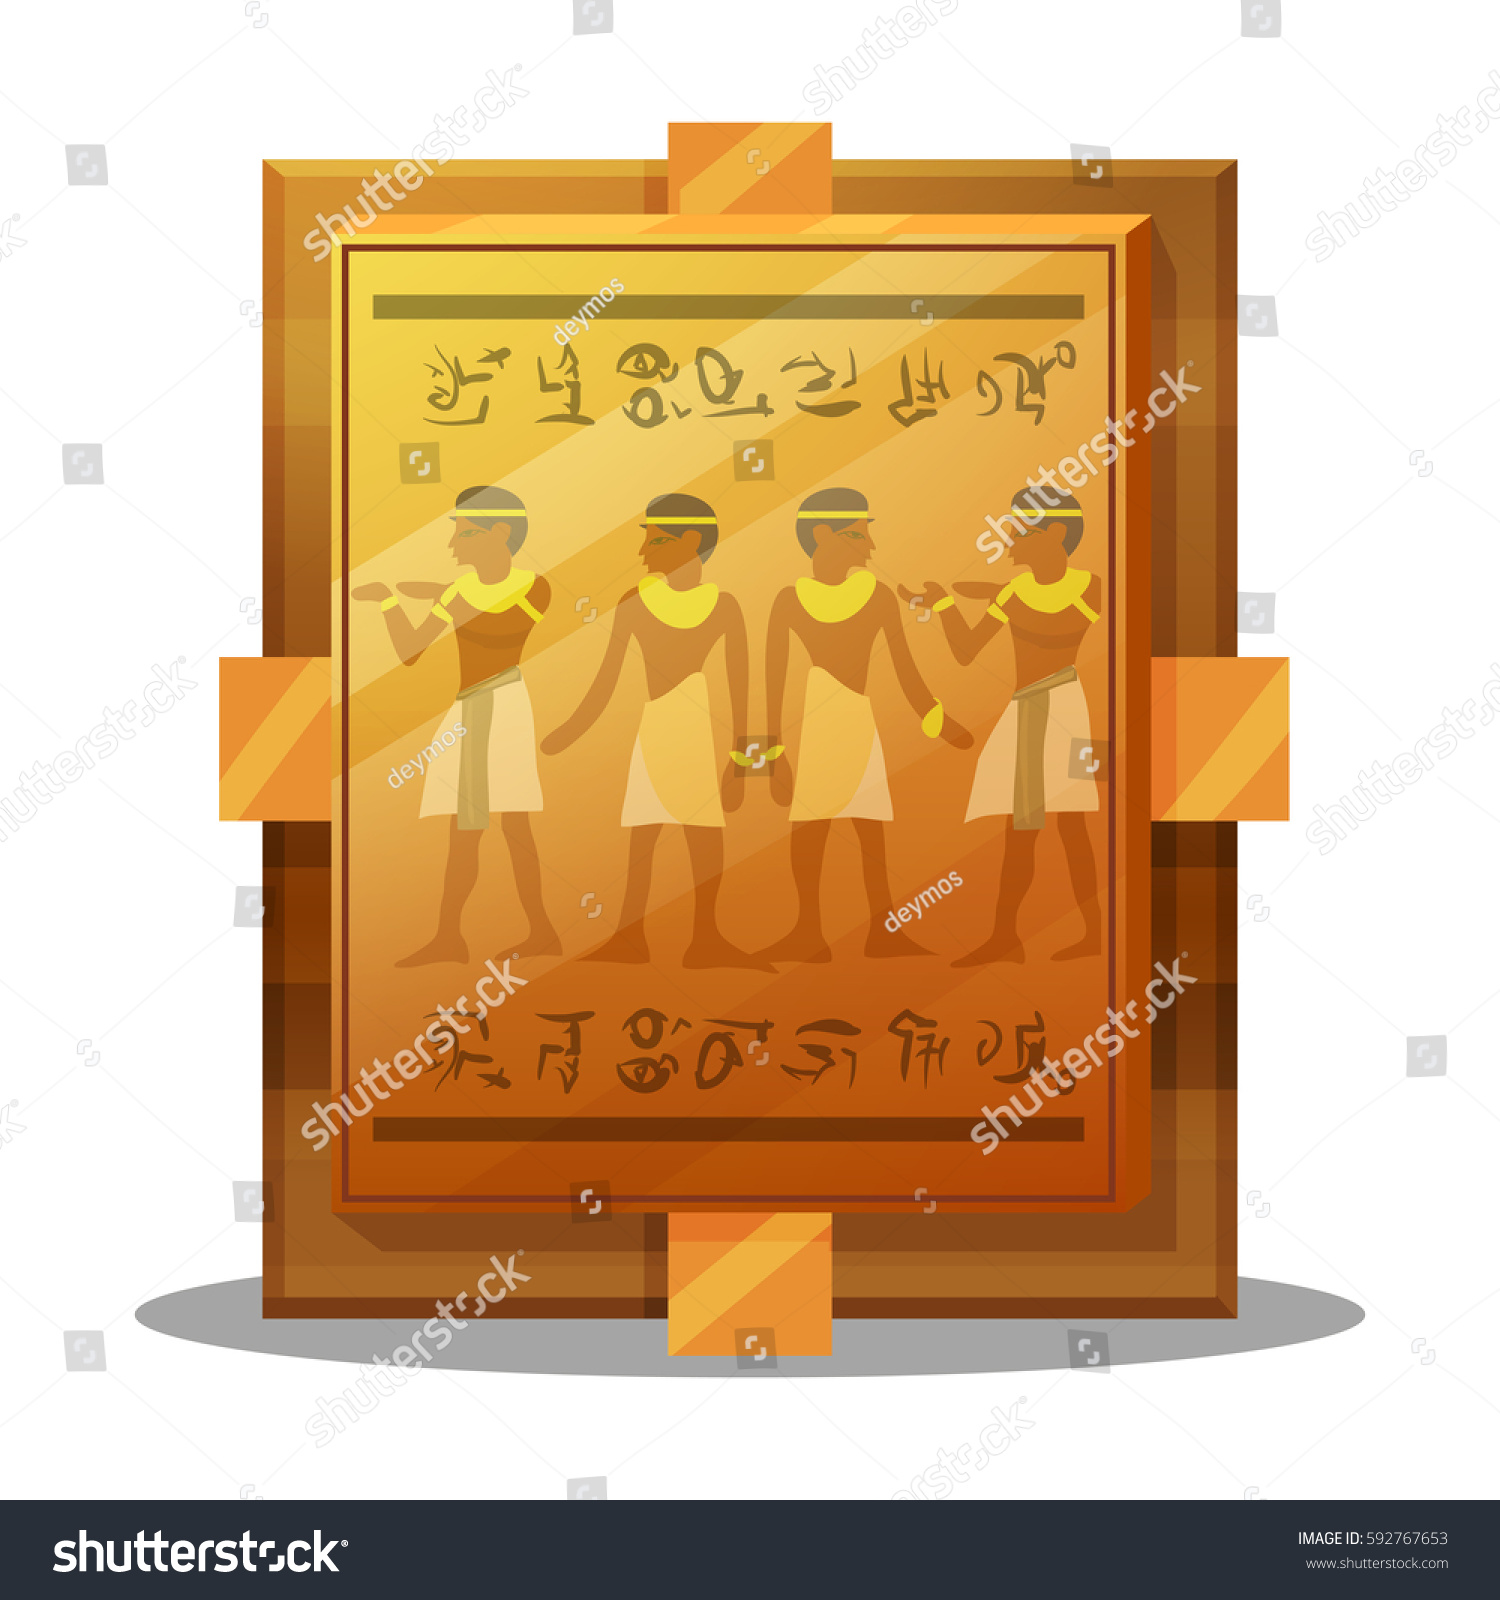 stock vector coin featuring egyptian cleopatra image egypt gold illustration of piastre